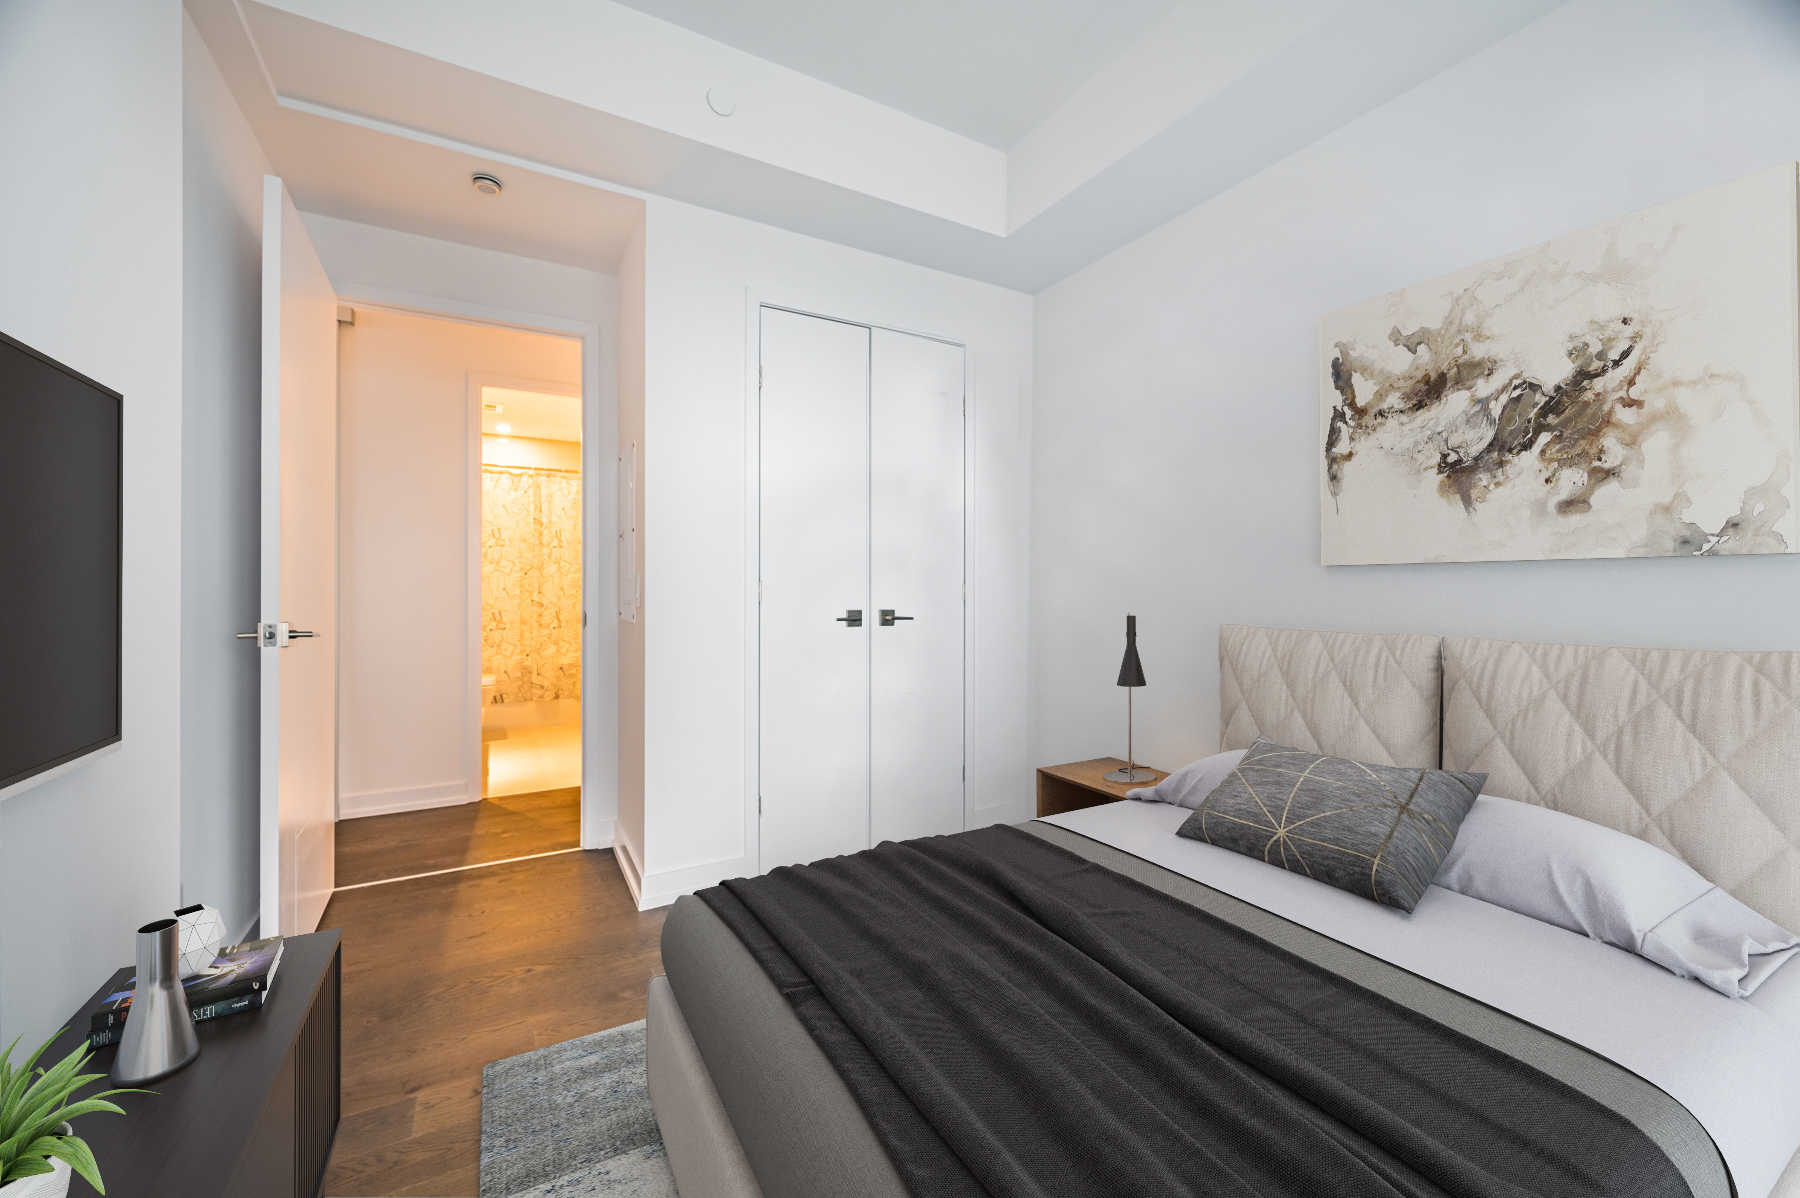 Condo bedroom with hardwood floors, gray walls and large closet.